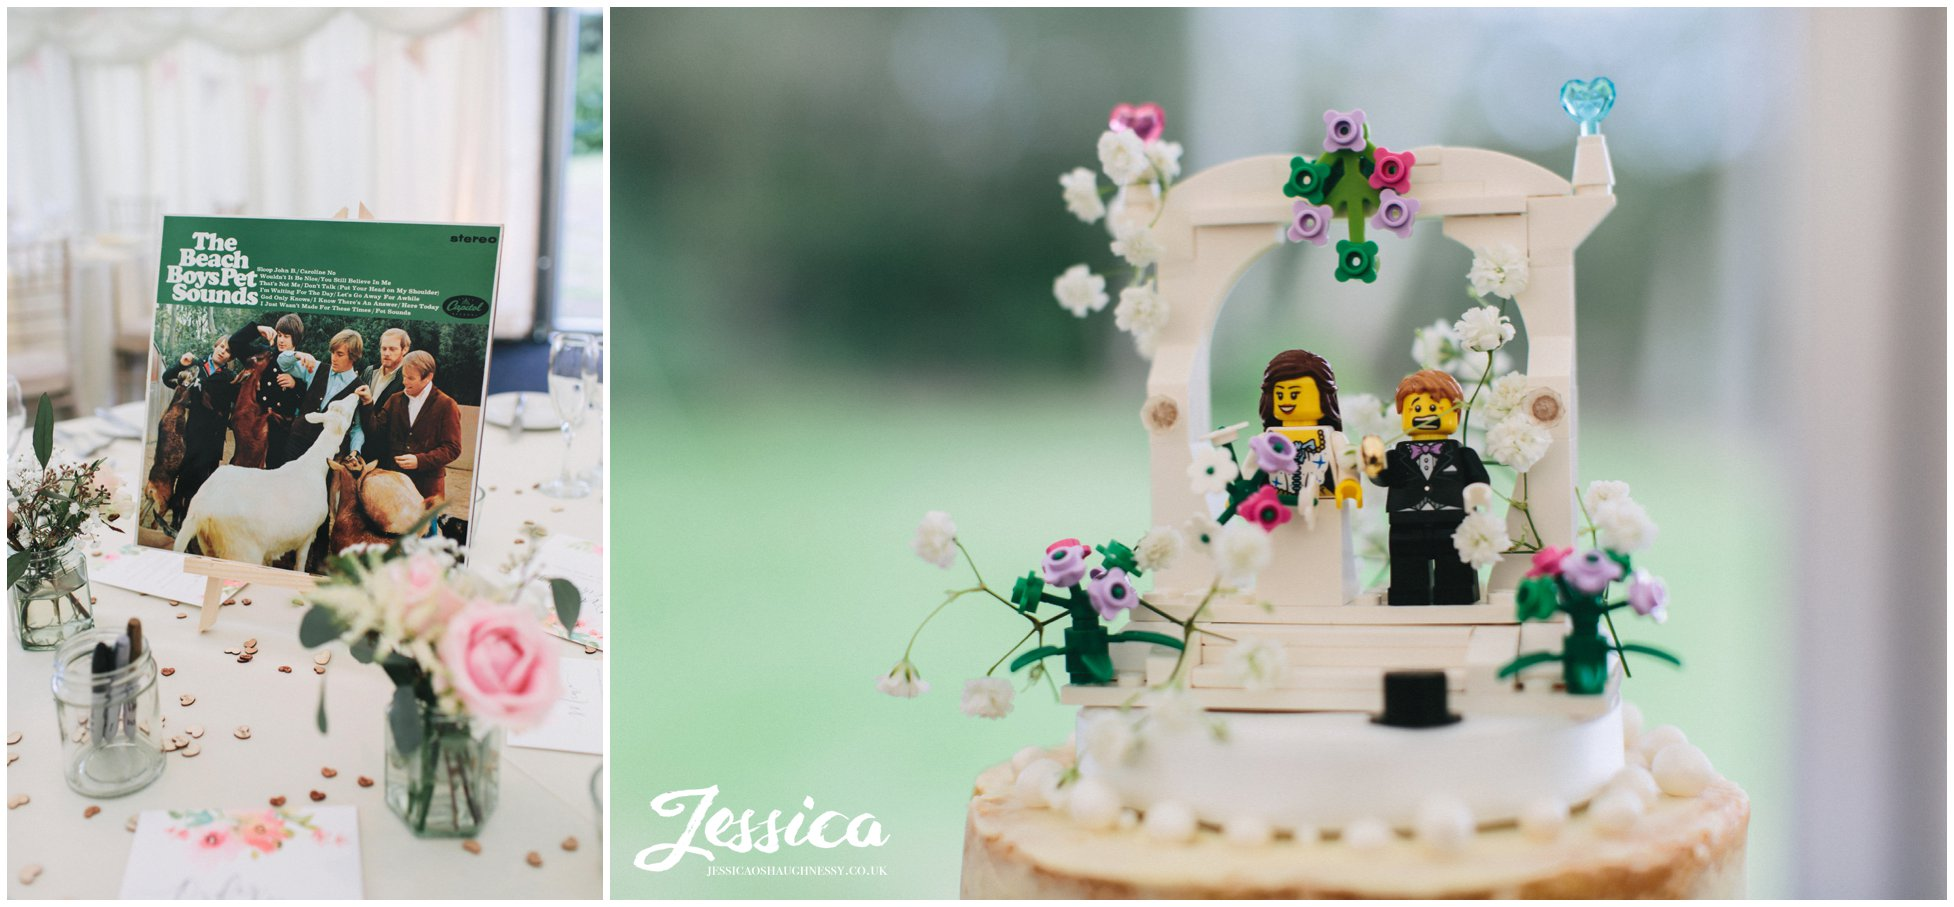 the wedding cake topped with lego characters